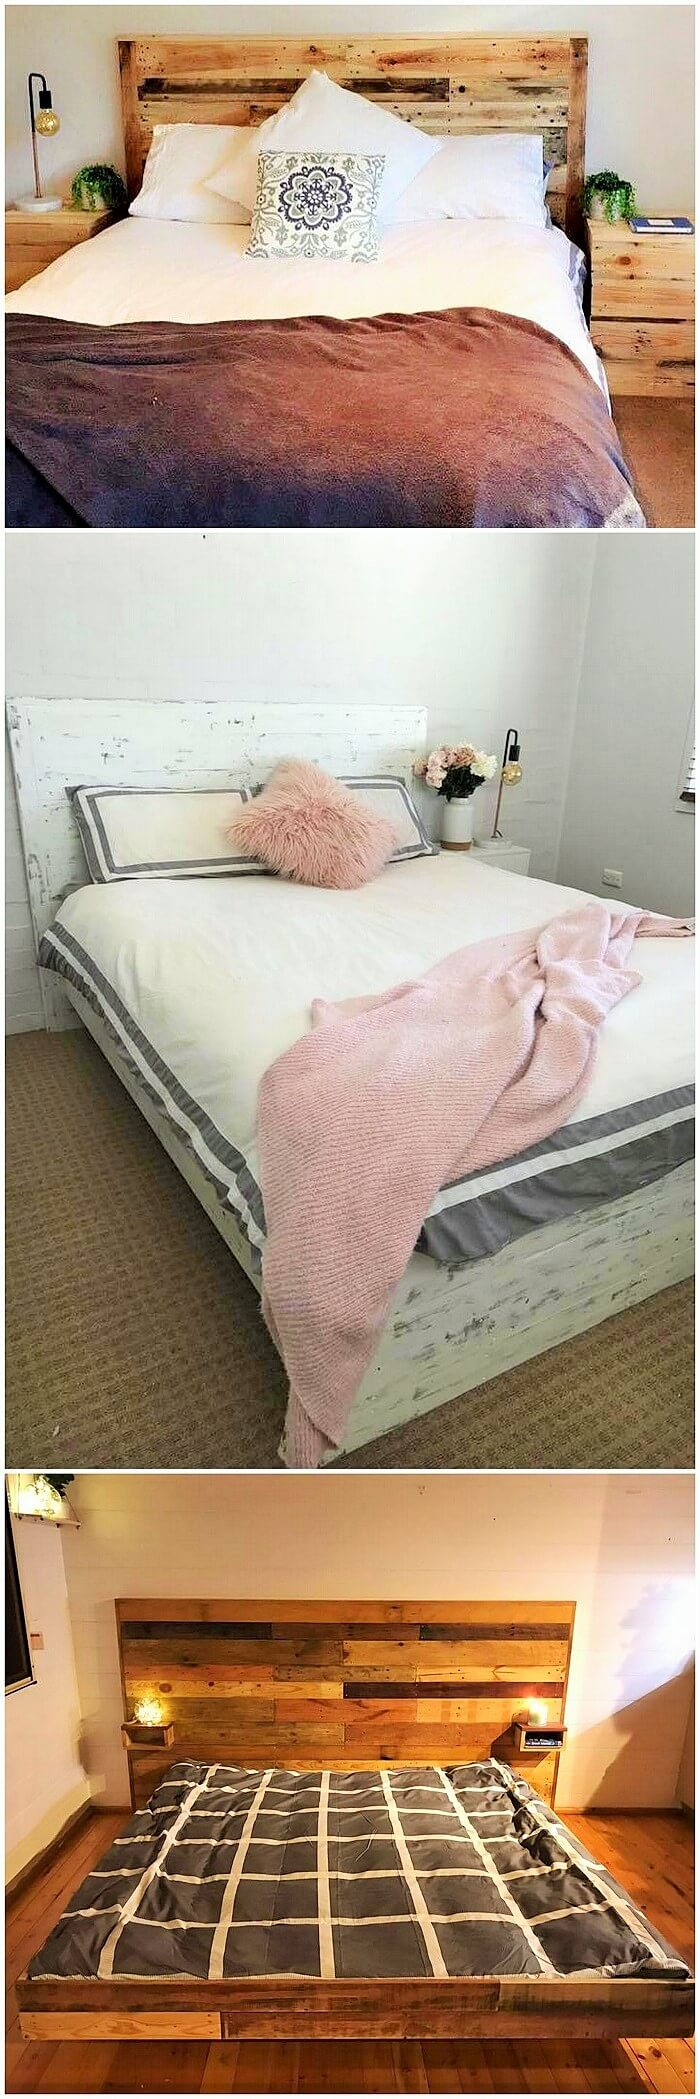 Wooden Pallets Bed Ideas (2)